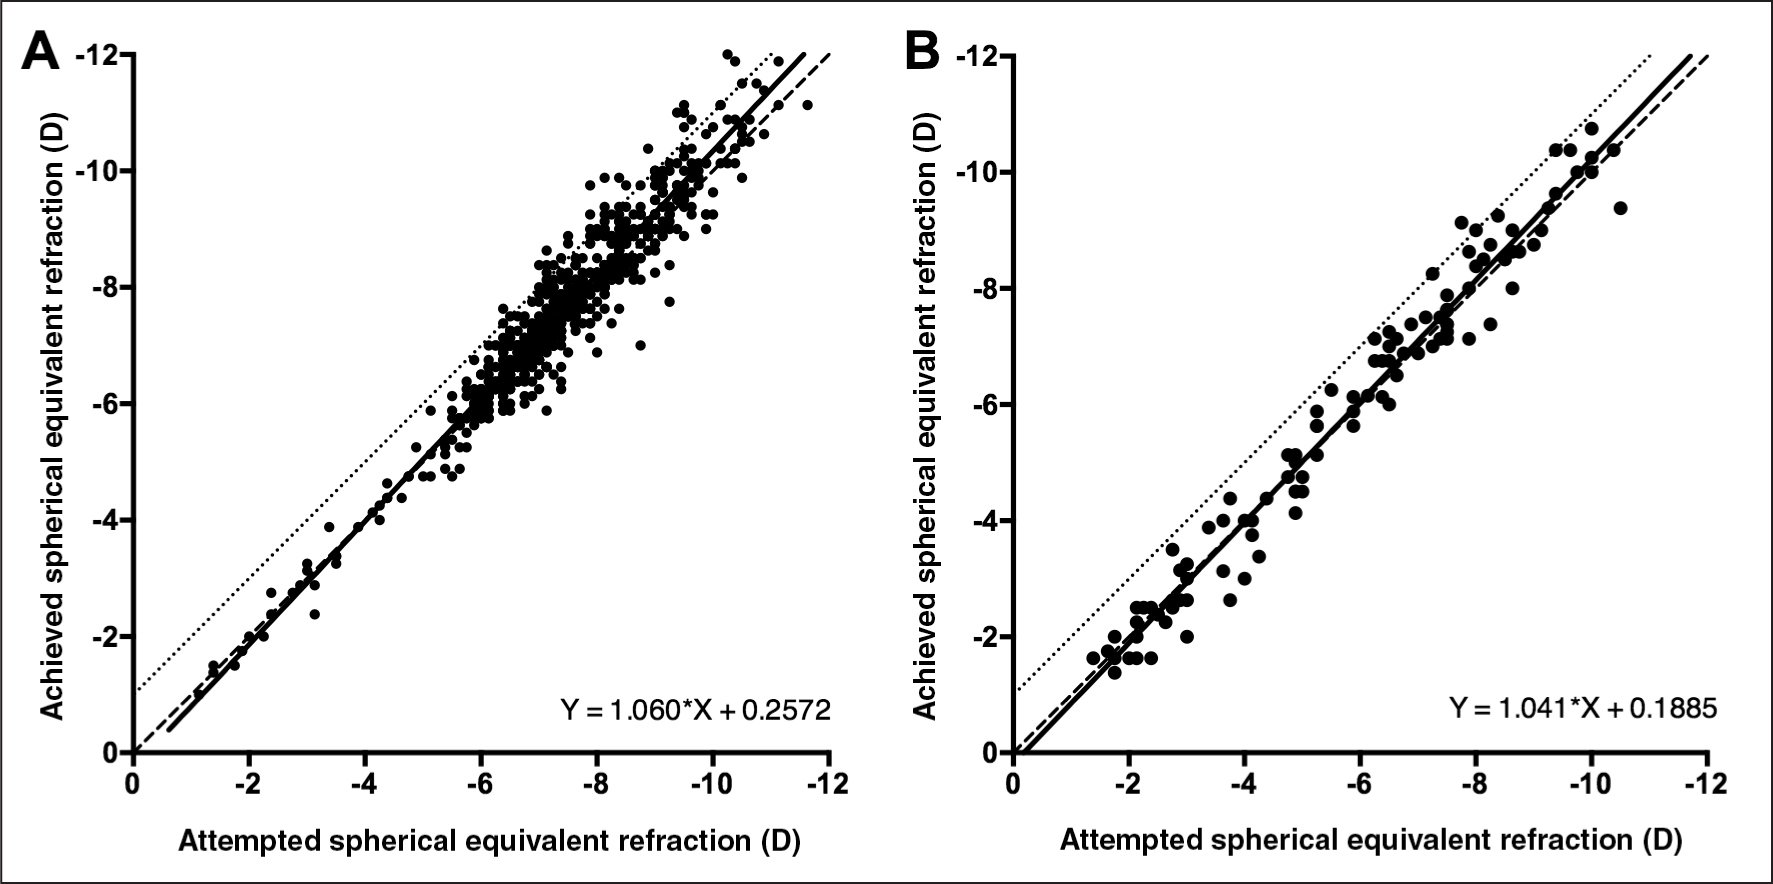 Achieved versus intended spherical equivalent correction in low astigmatism (A) and high astigmatism (B). Points above and below the dashed lines indicate over- and under-correction, respectively. The solid lines indicate the outcome of the linear regression analyses.